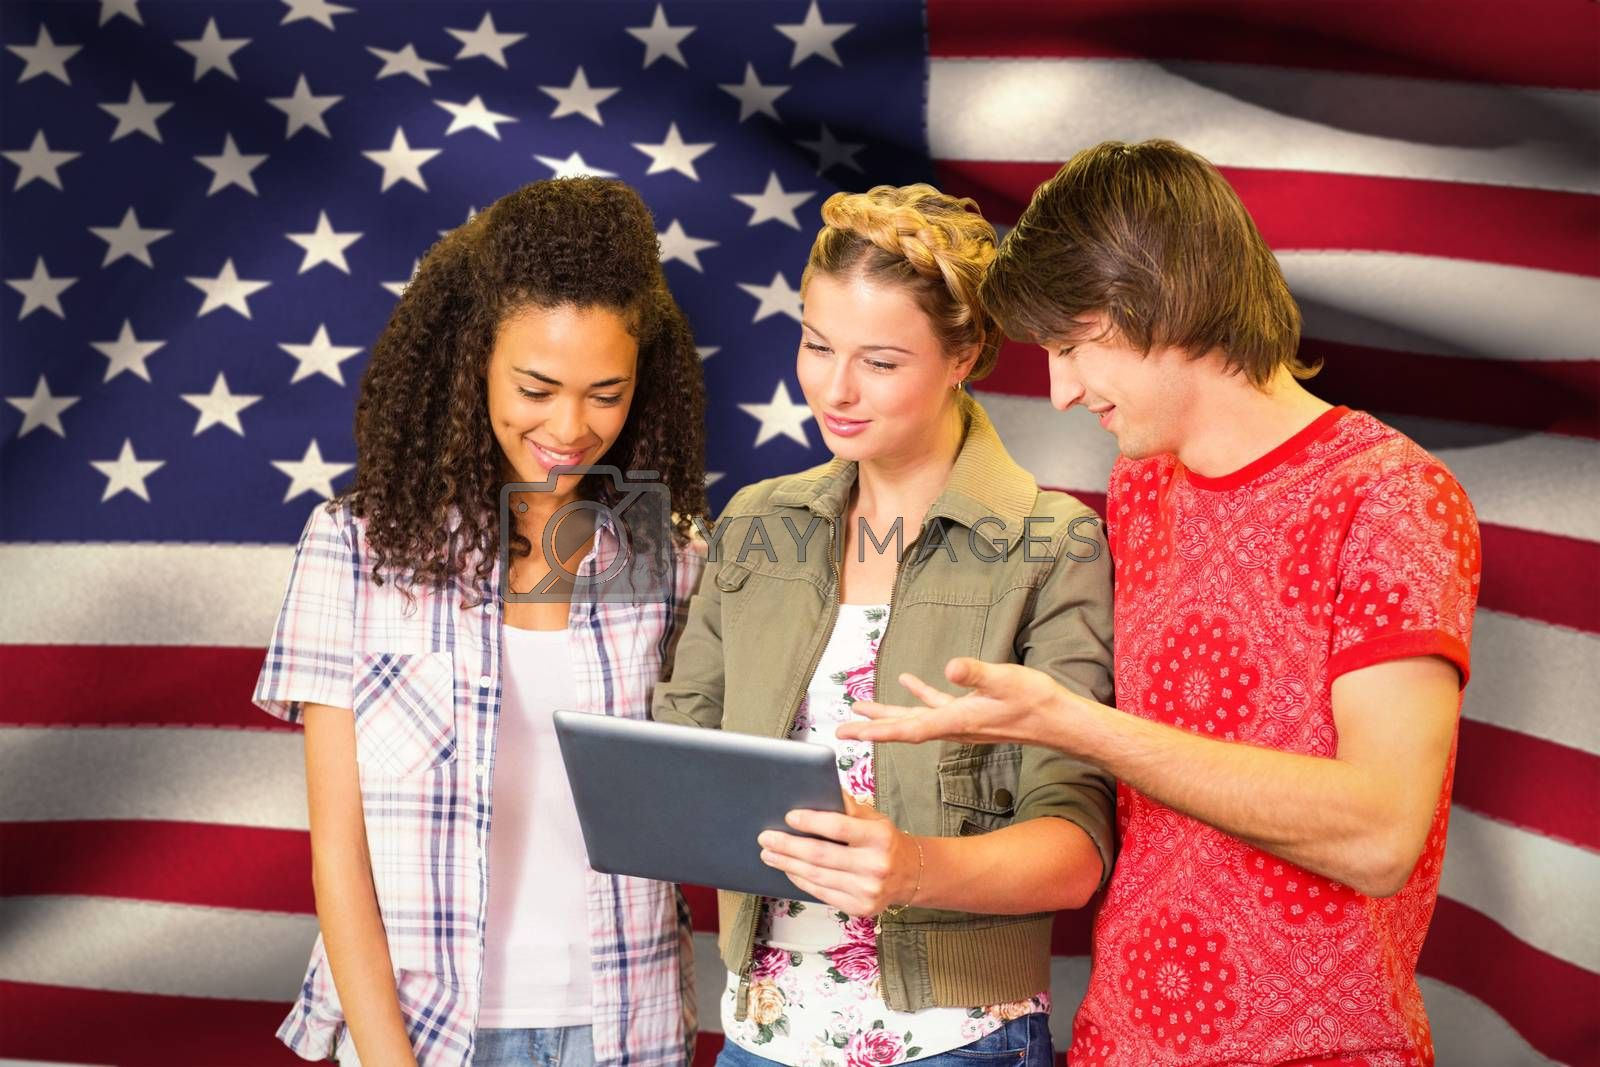 Students using digital tablet in library against digitally generated american national flag